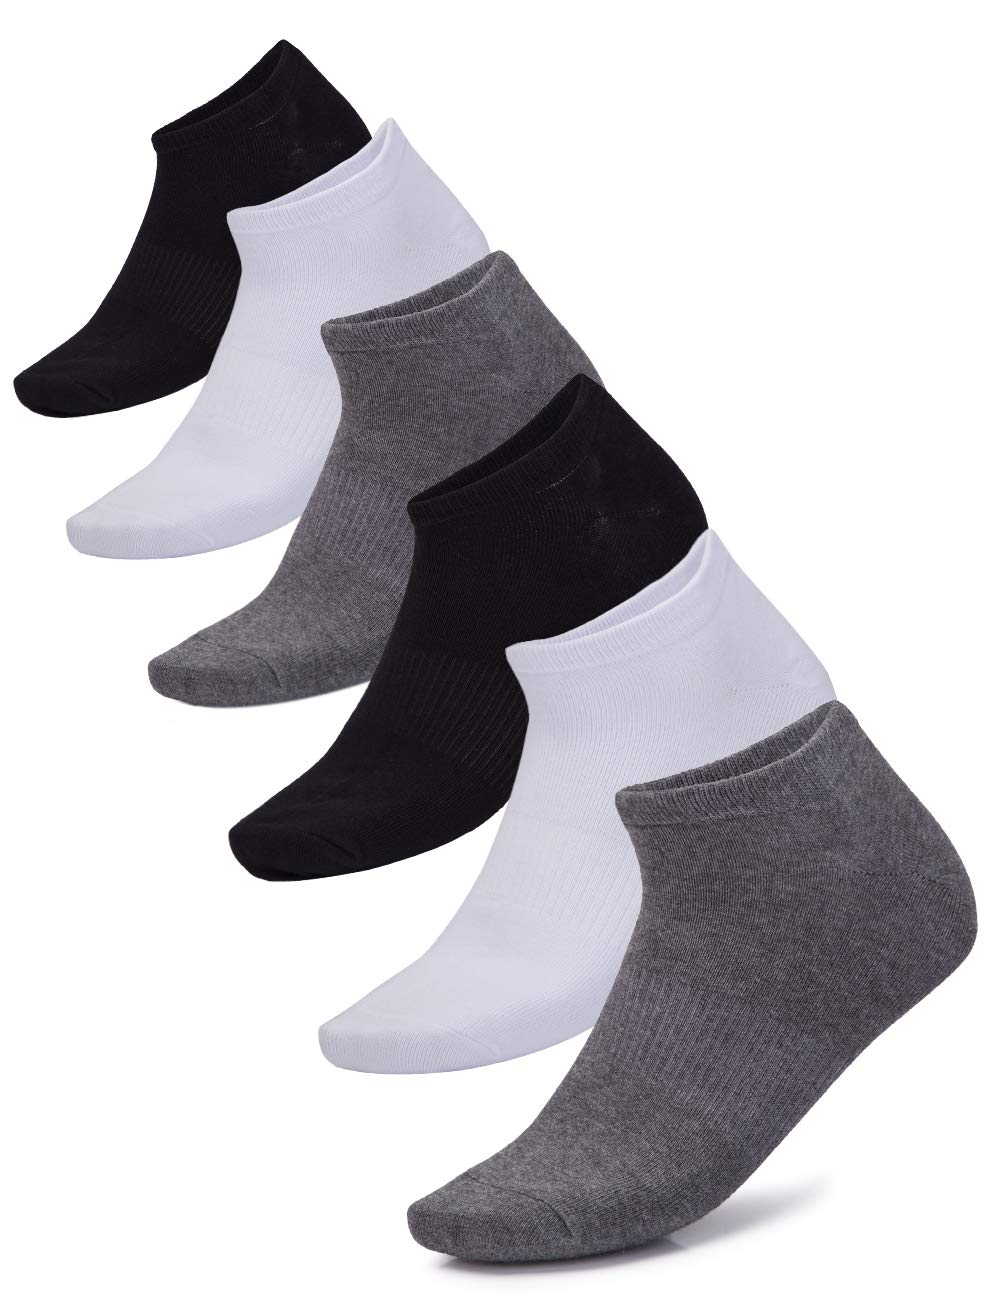 CAMEL Mens Ankle Socks Crew Low Cut Moisture Wicking Breathable Comfort Cotton Casual Work Athletic Socks 6 Pairs